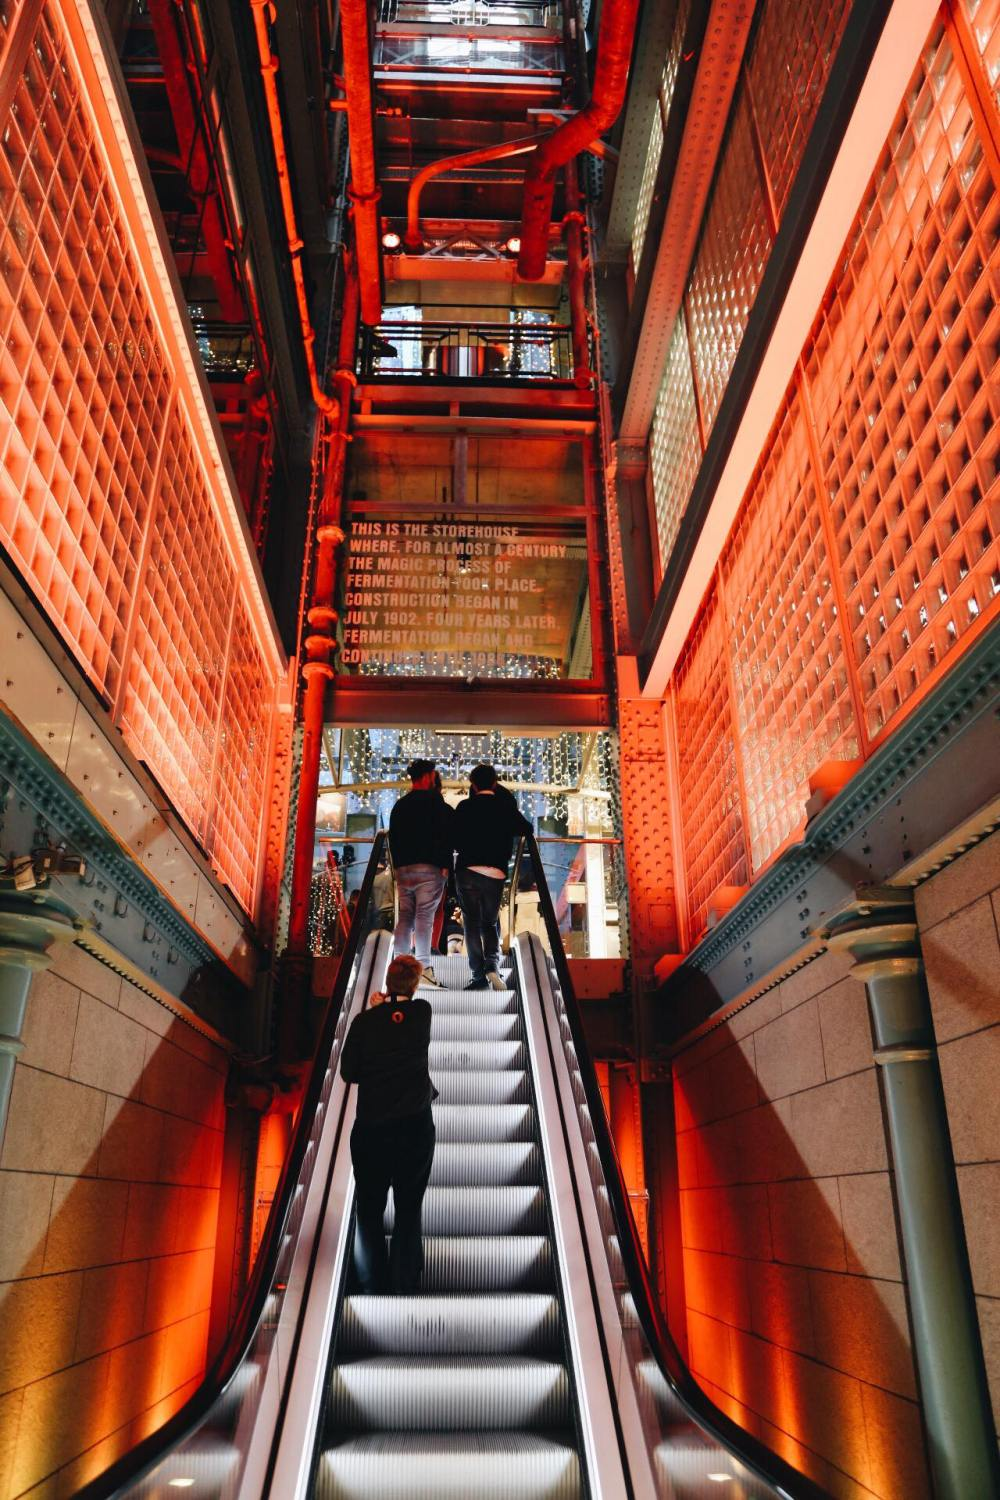 We're in Dublin, Ireland - Guinness Storehouse - Teeling Whiskey (1)